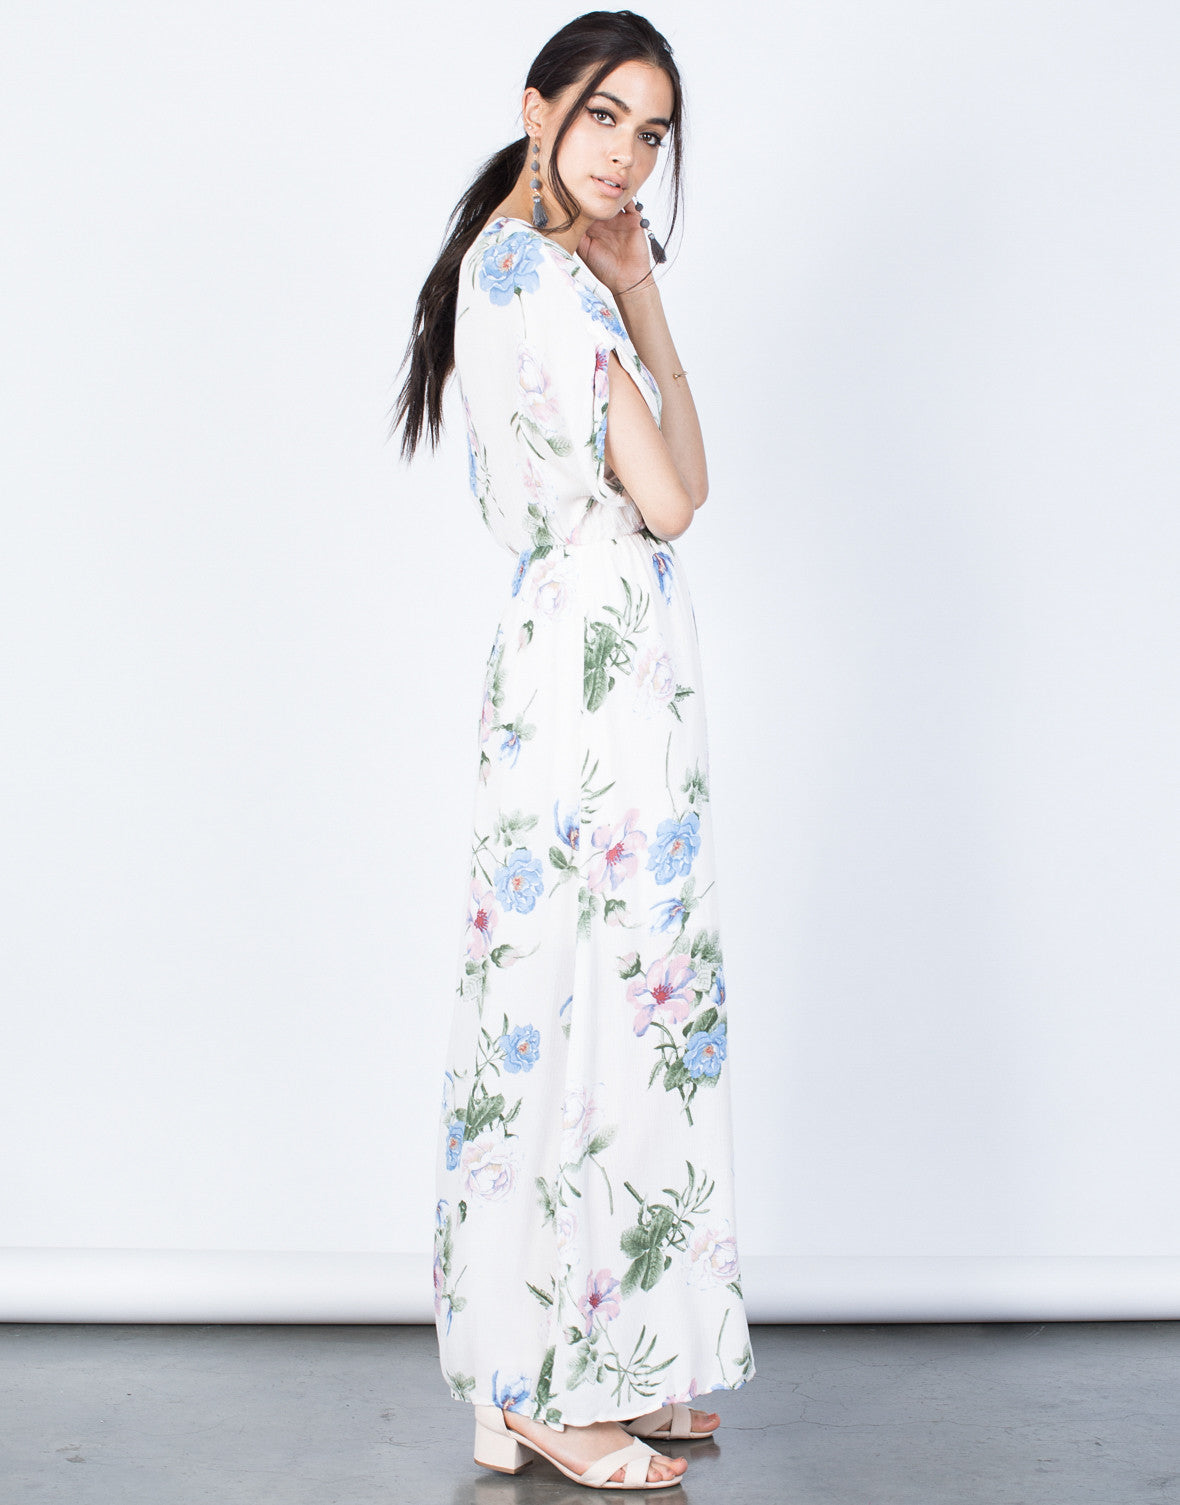 Side View of Blossoming Floral Dress